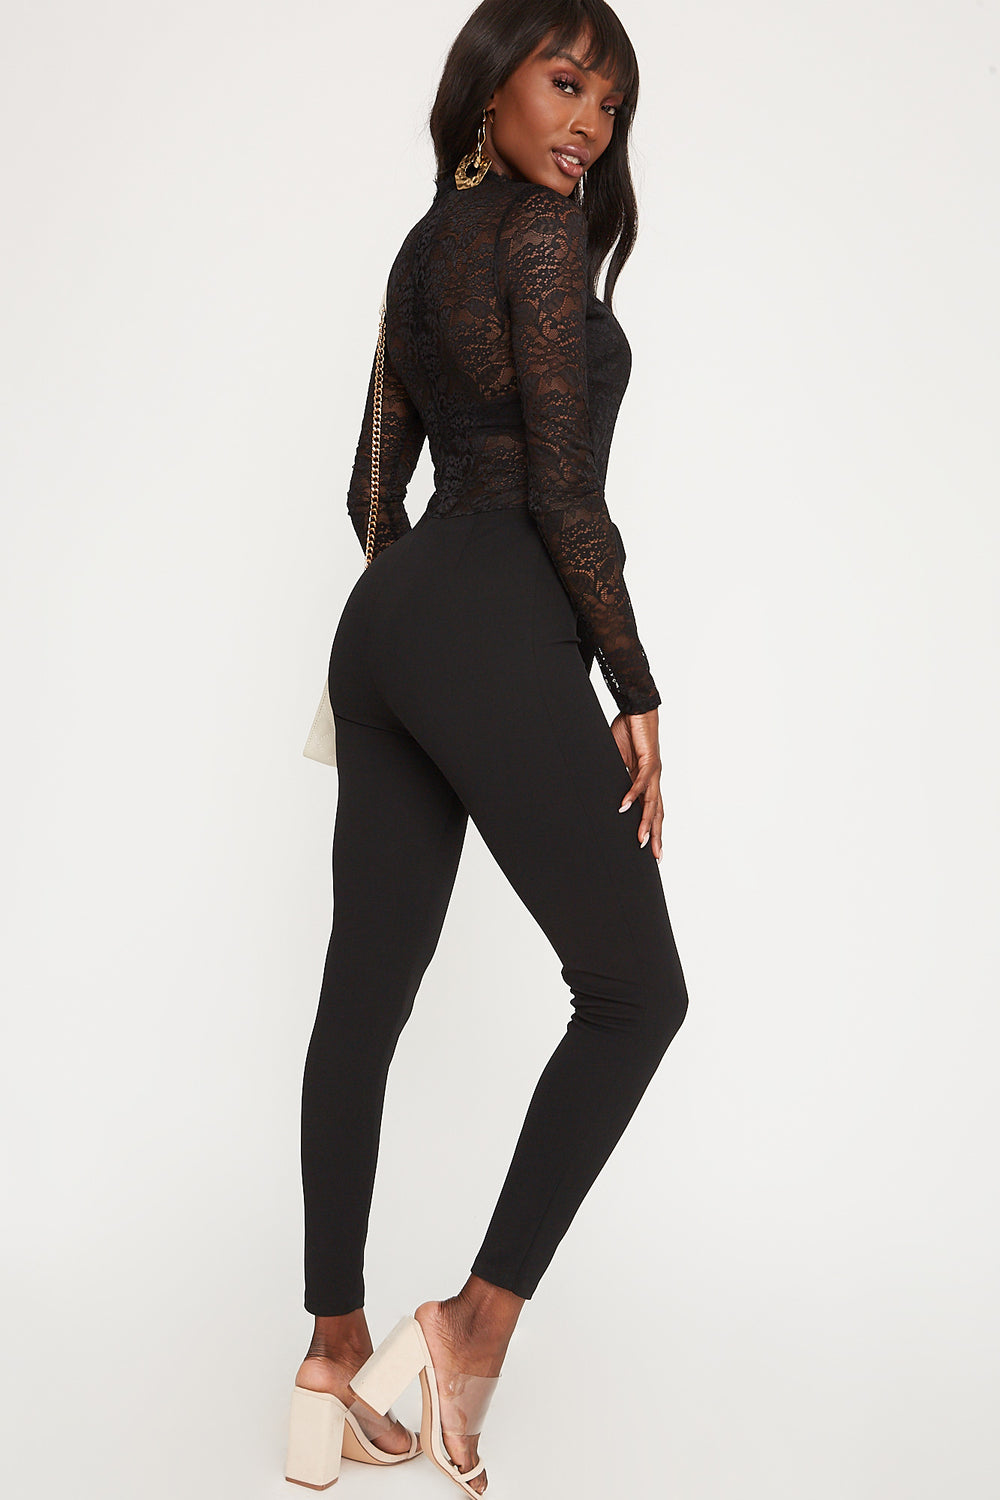 Lace Mock Neck Belted Long Sleeve Jumpsuit Black